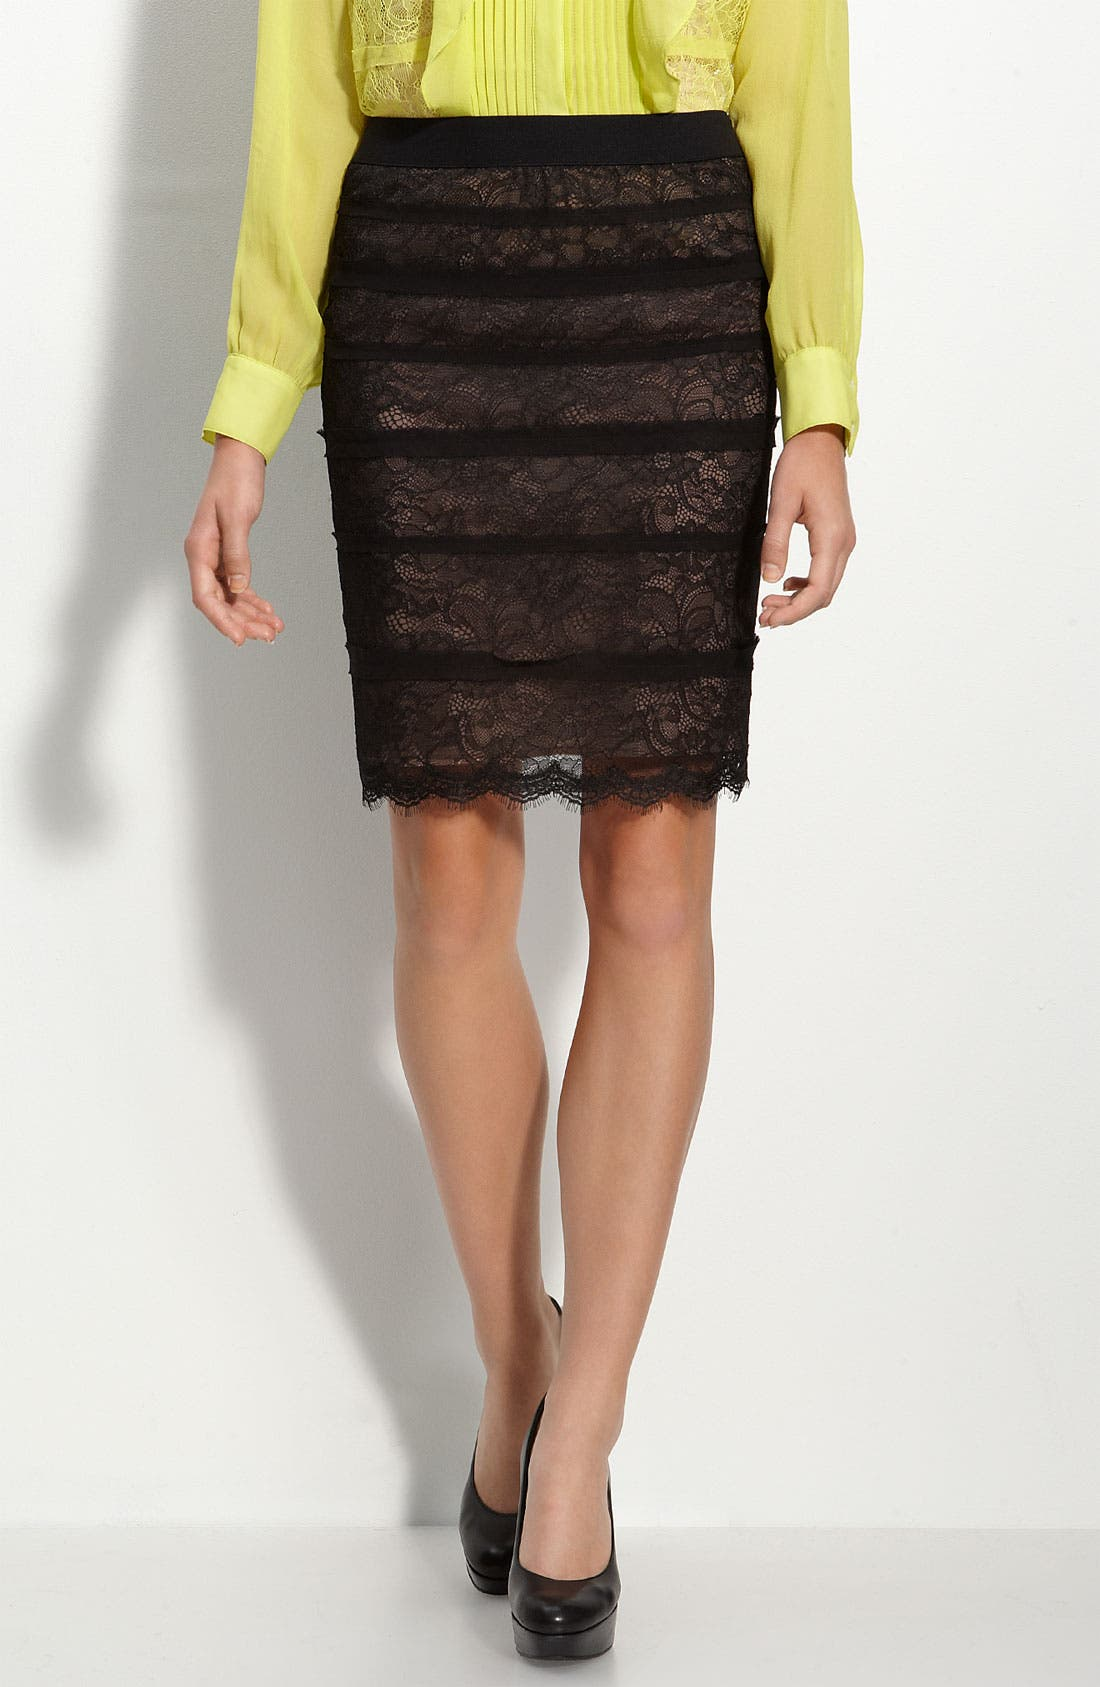 Alternate Image 1 Selected - BCBGMAXAZRIA 'Jocelyn' Lace Pencil Skirt